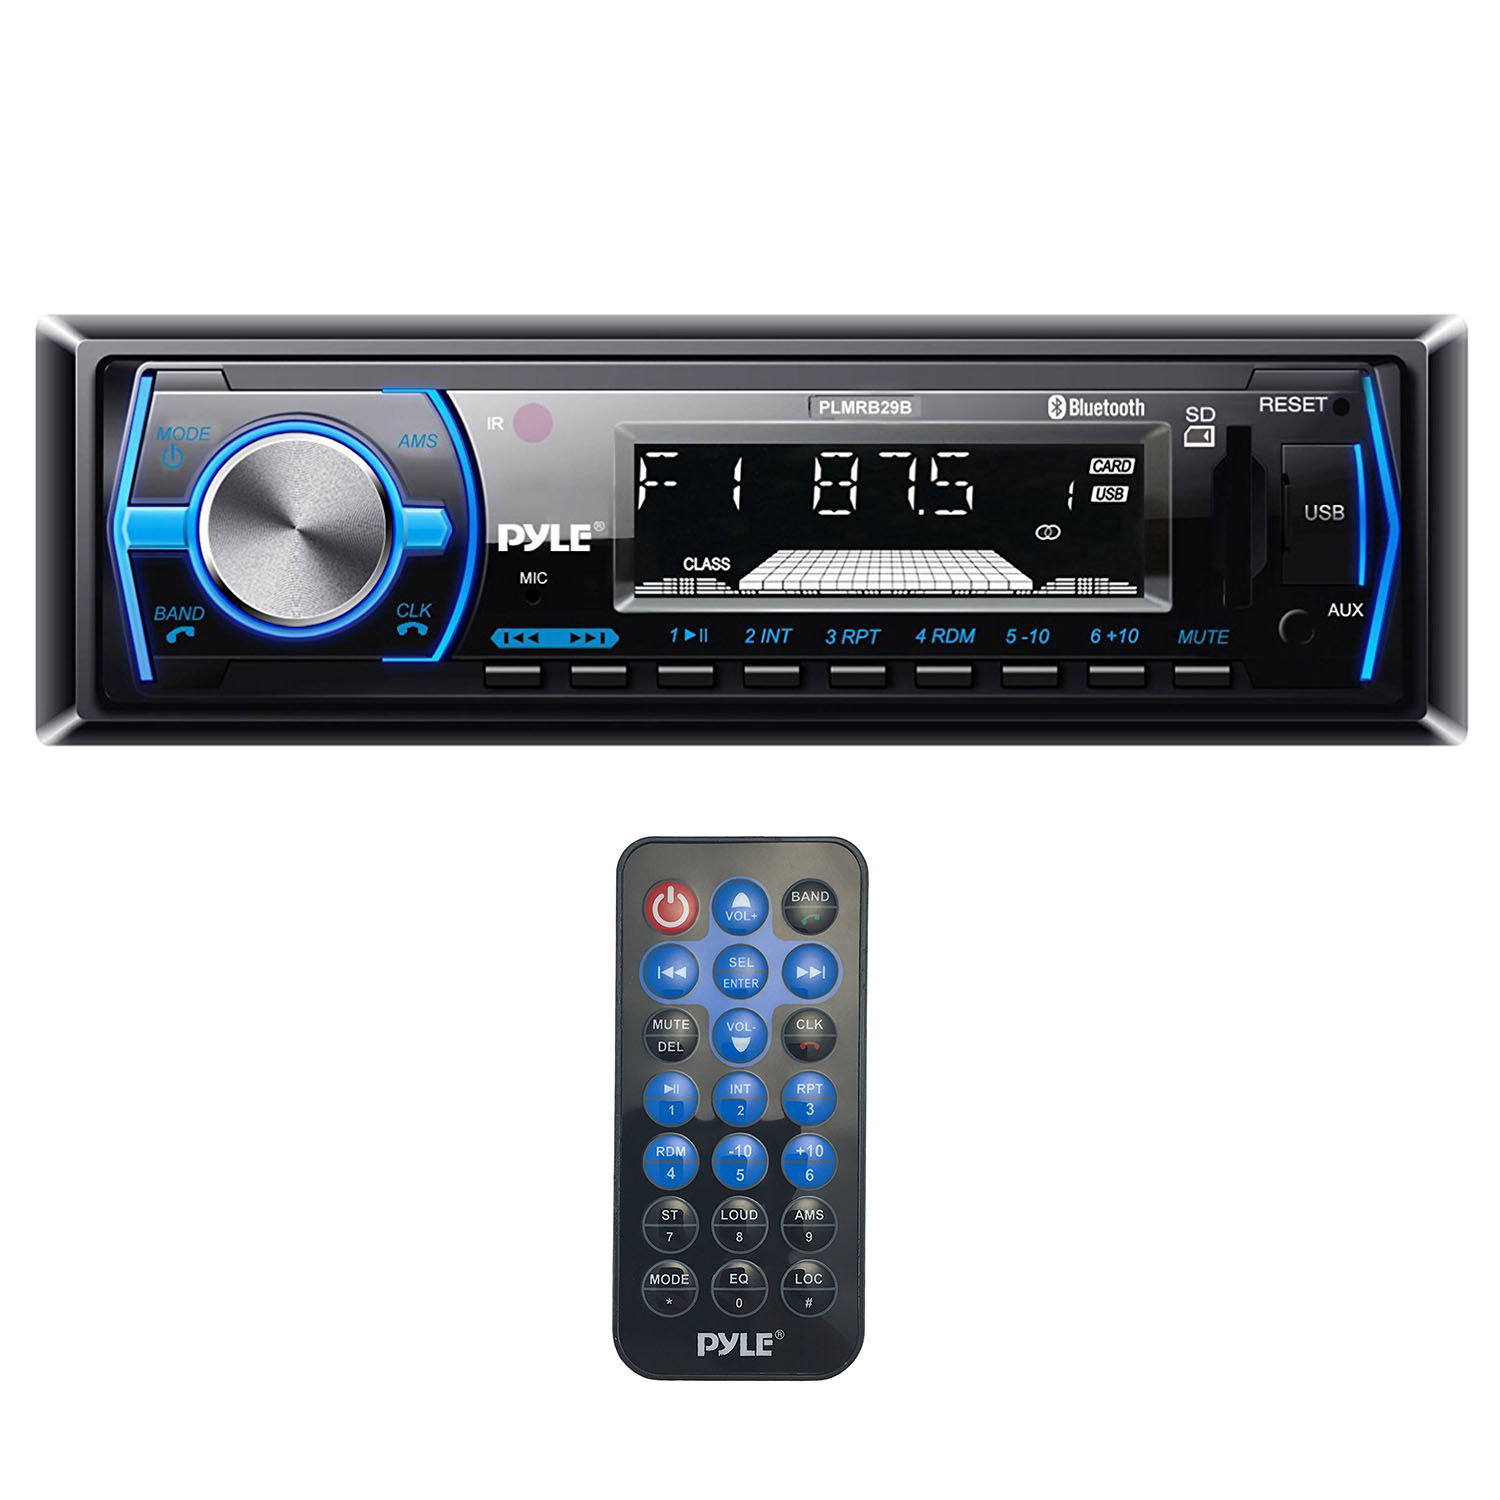 Pyle Single DIN Bluetooth In-Dash Car Audio Stereo